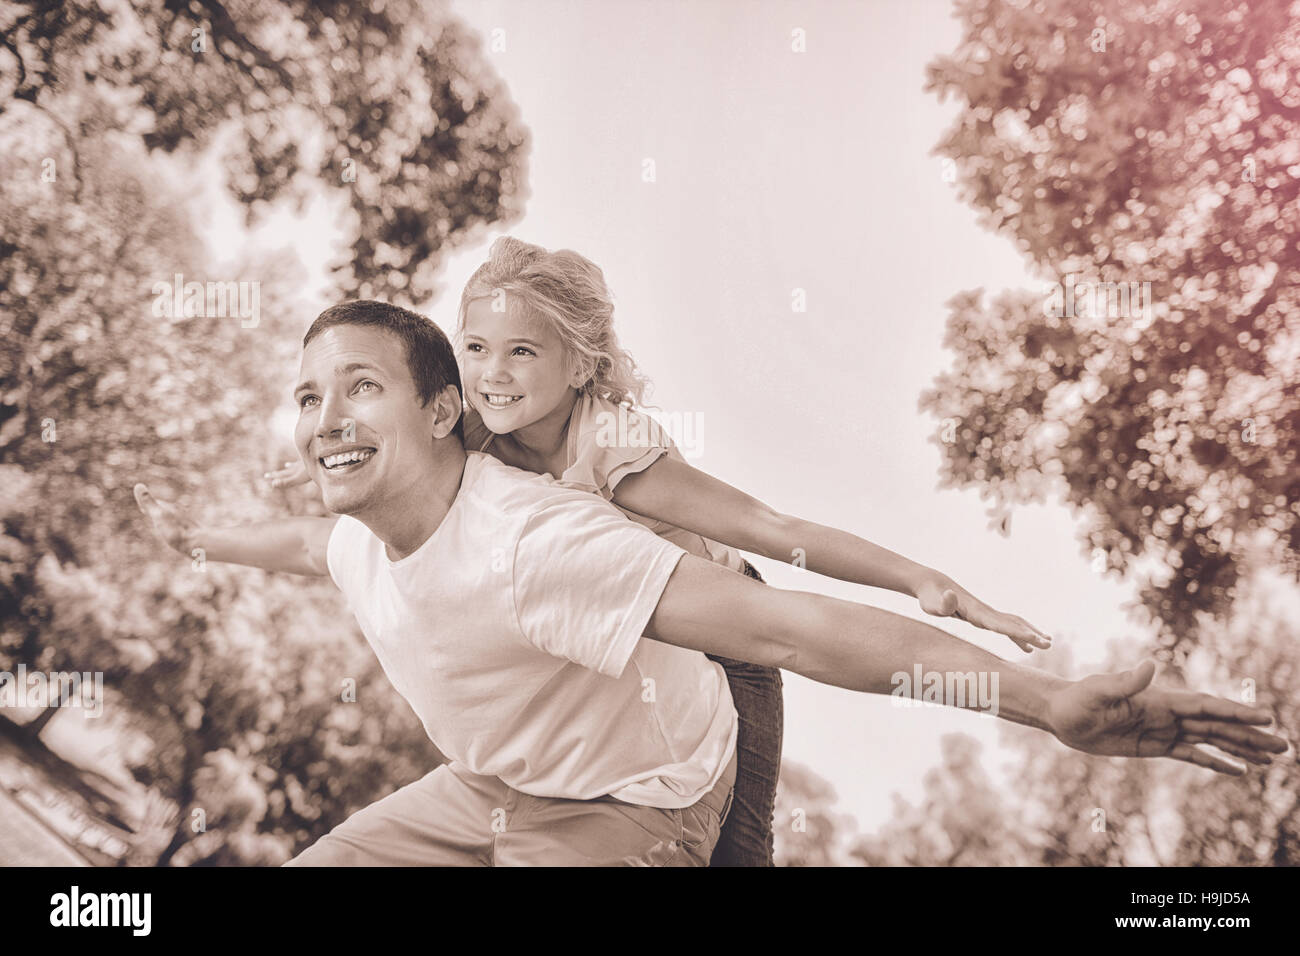 Father giving daughter un piggy back in park Photo Stock